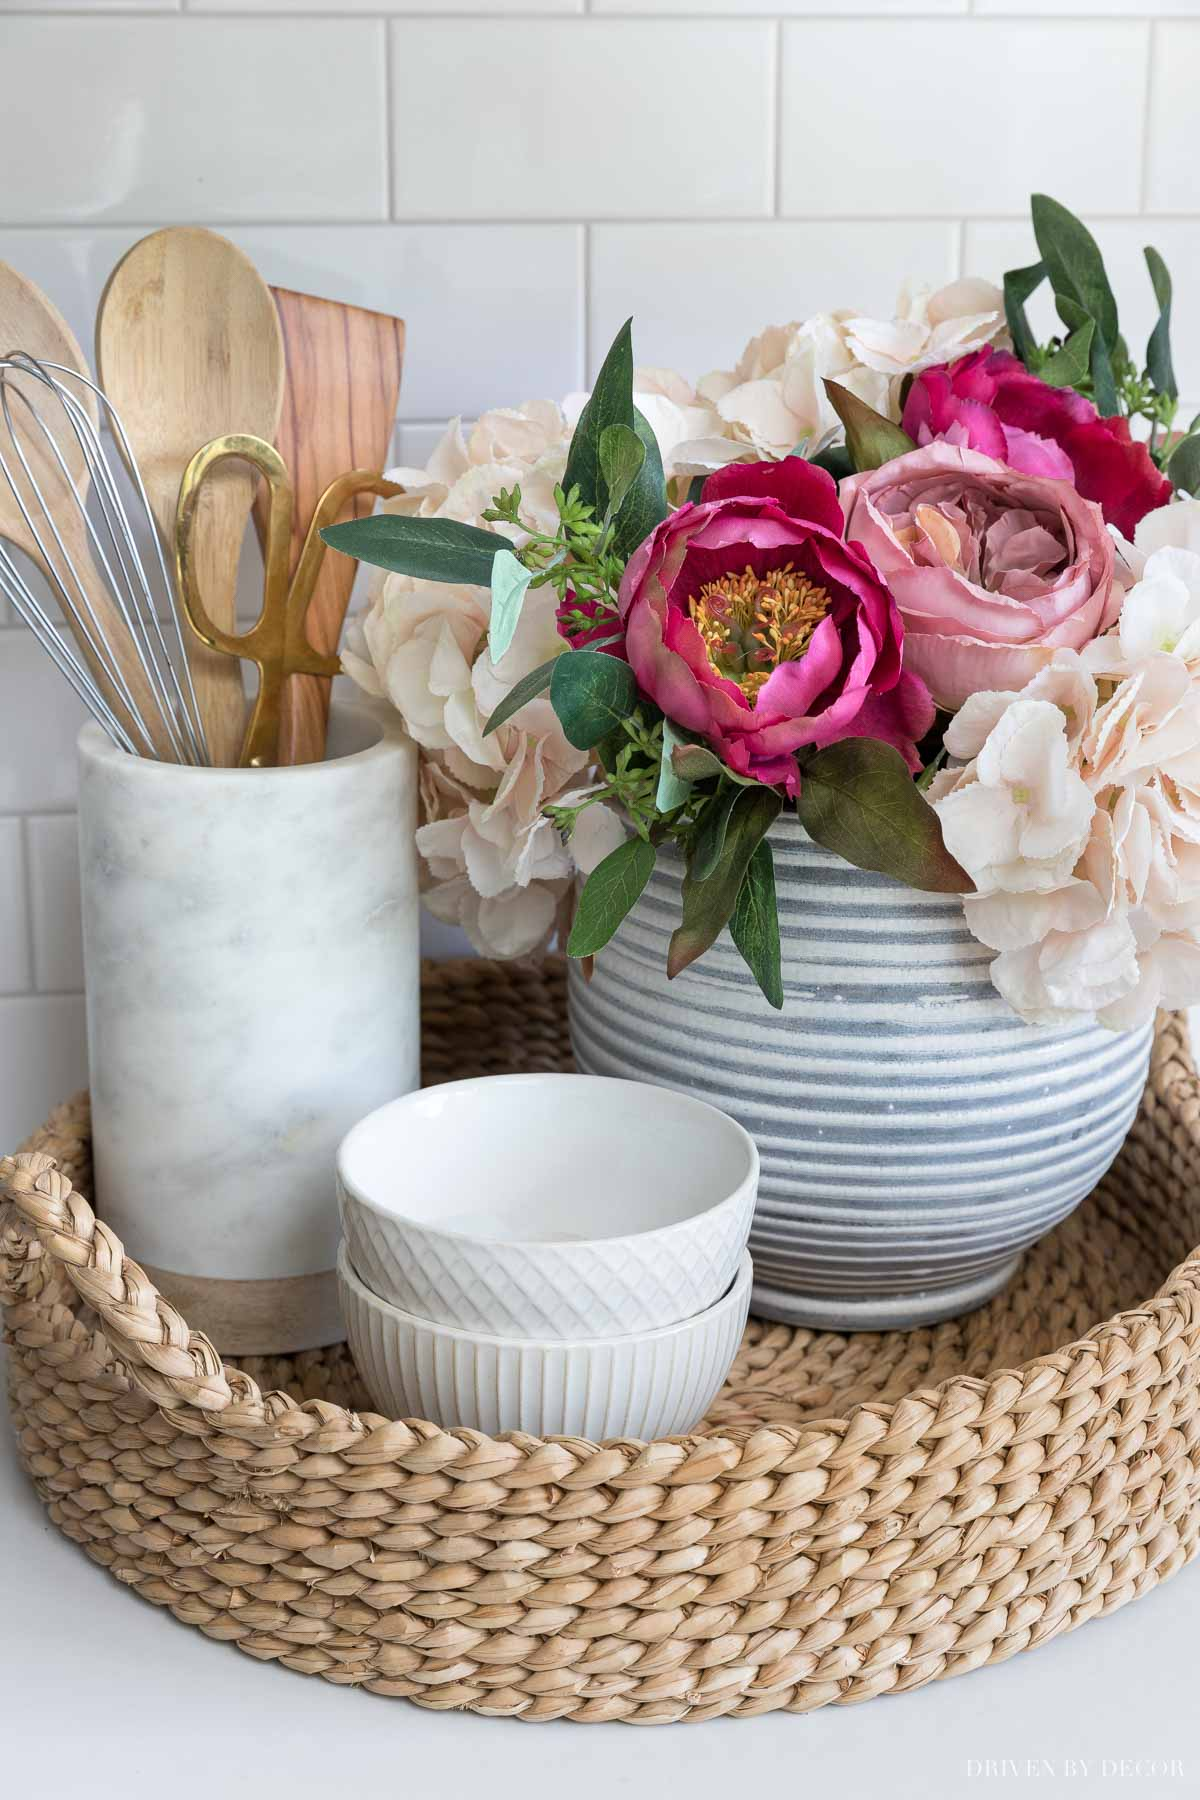 The artificial flowers in our kitchen sitting in a round woven tray